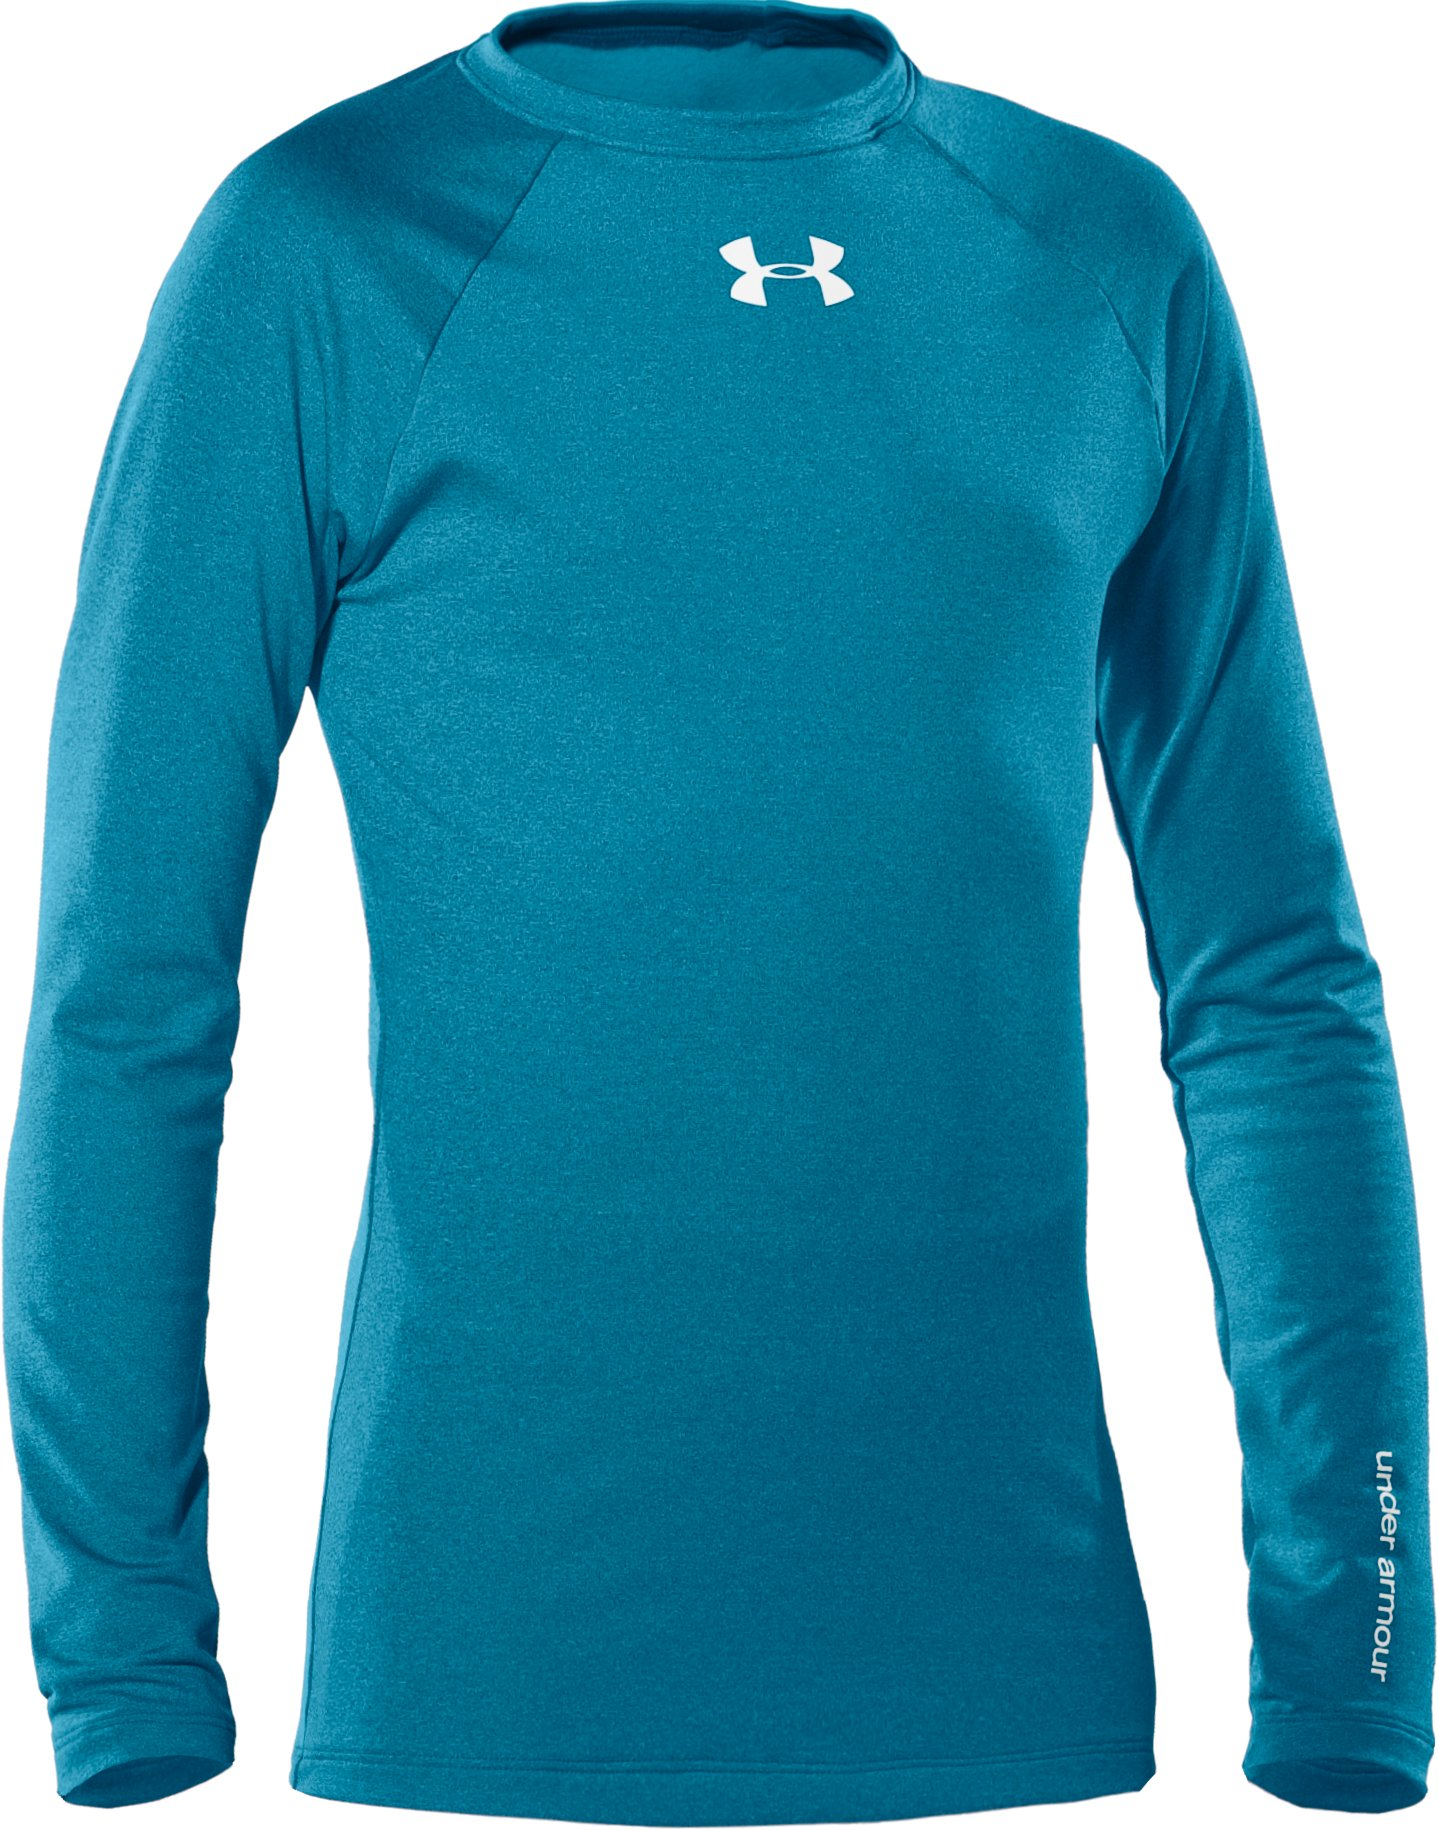 Girls' ColdGear® Fitted Long Sleeve Crew, Break, zoomed image